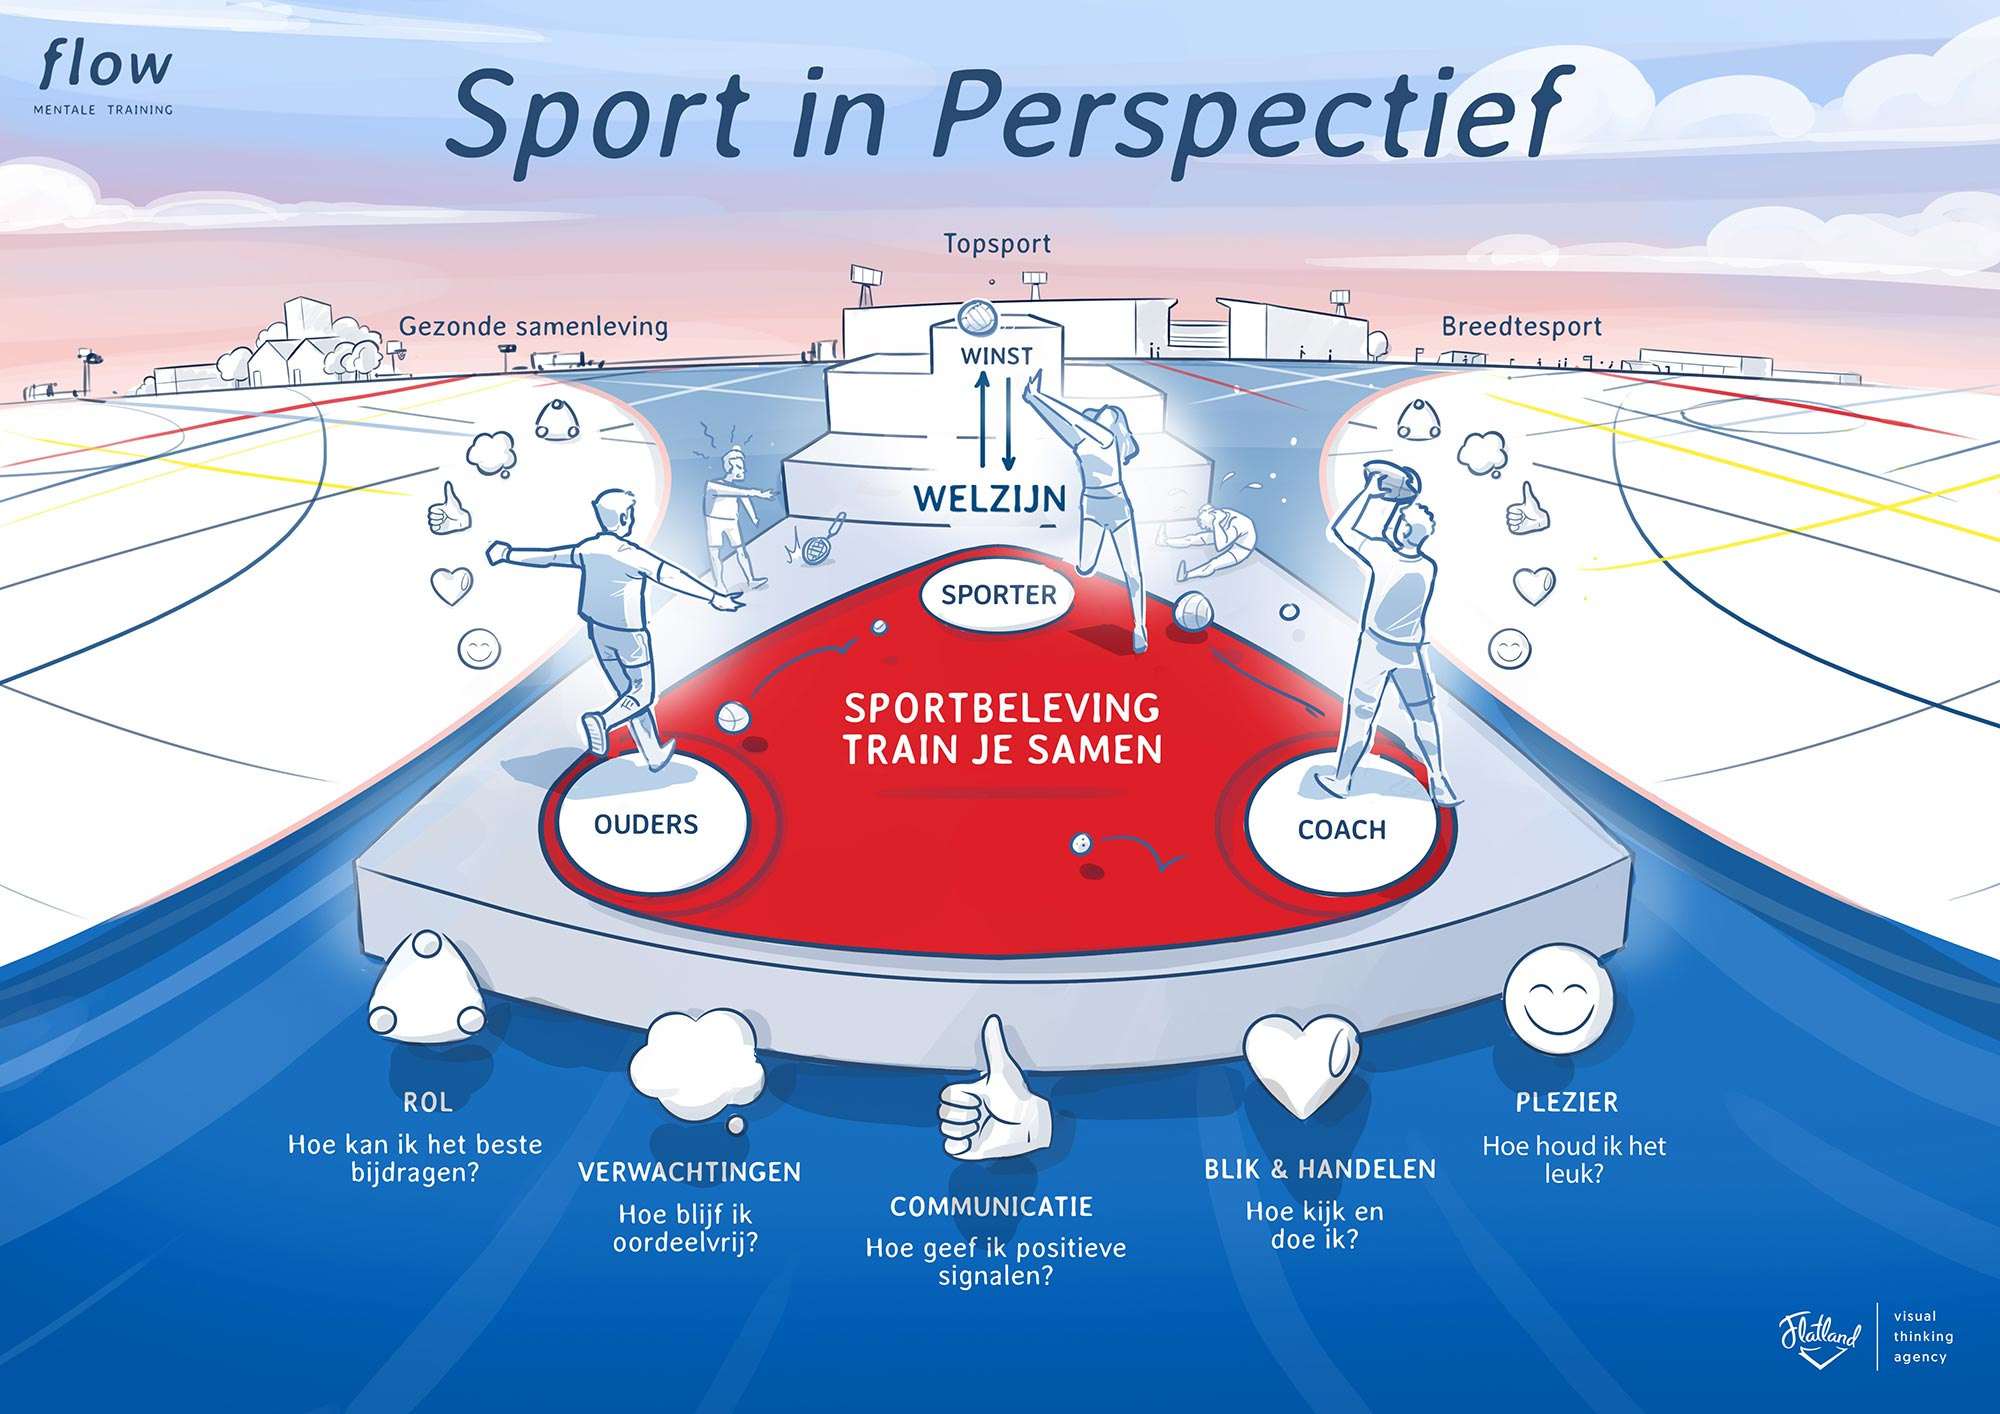 Sport in Perspectief